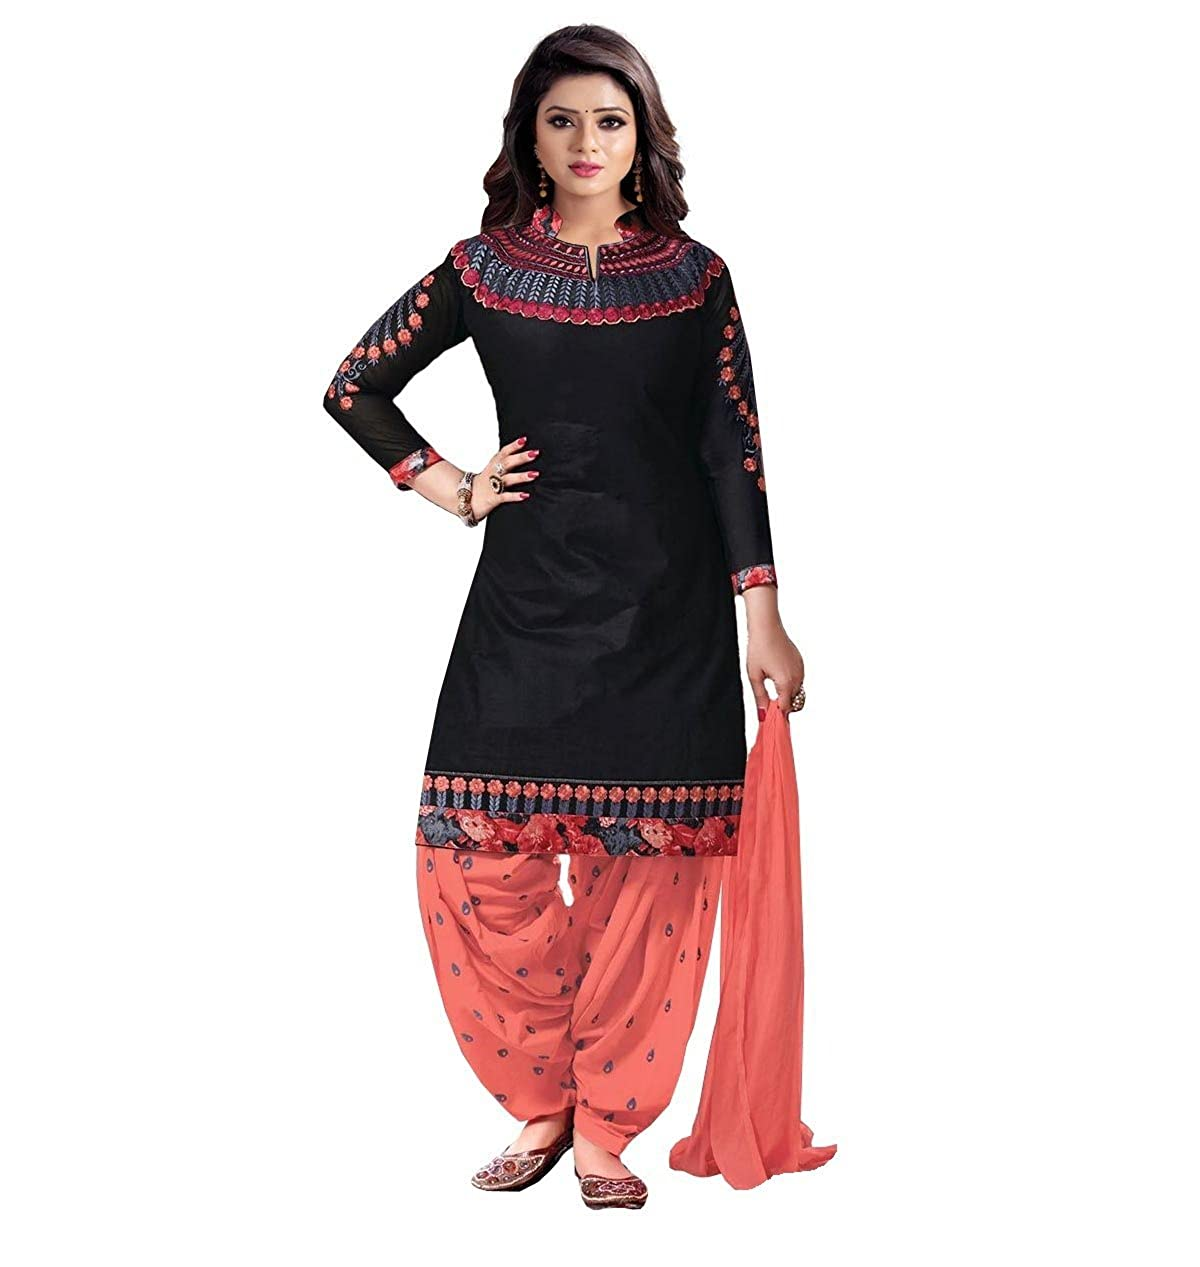 ecc3478c443 Crazy Women s Embroidered Pure Cotton Semi Stitched Patiala Salwar Suits  (Black